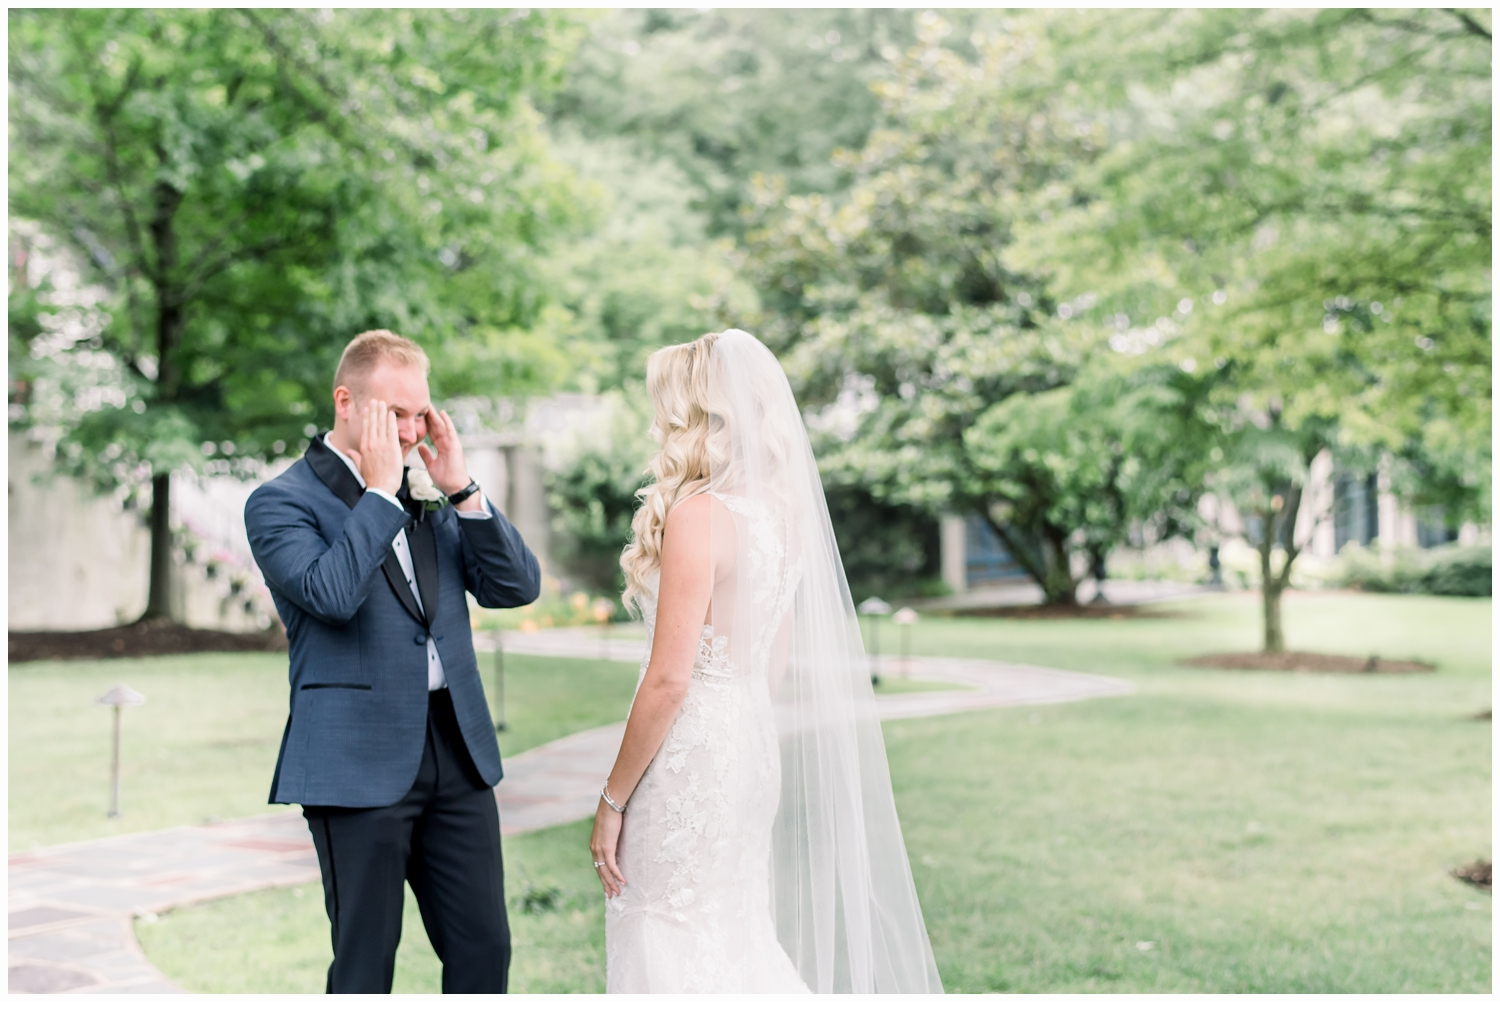 groom seeing bride for the first time on wedding day